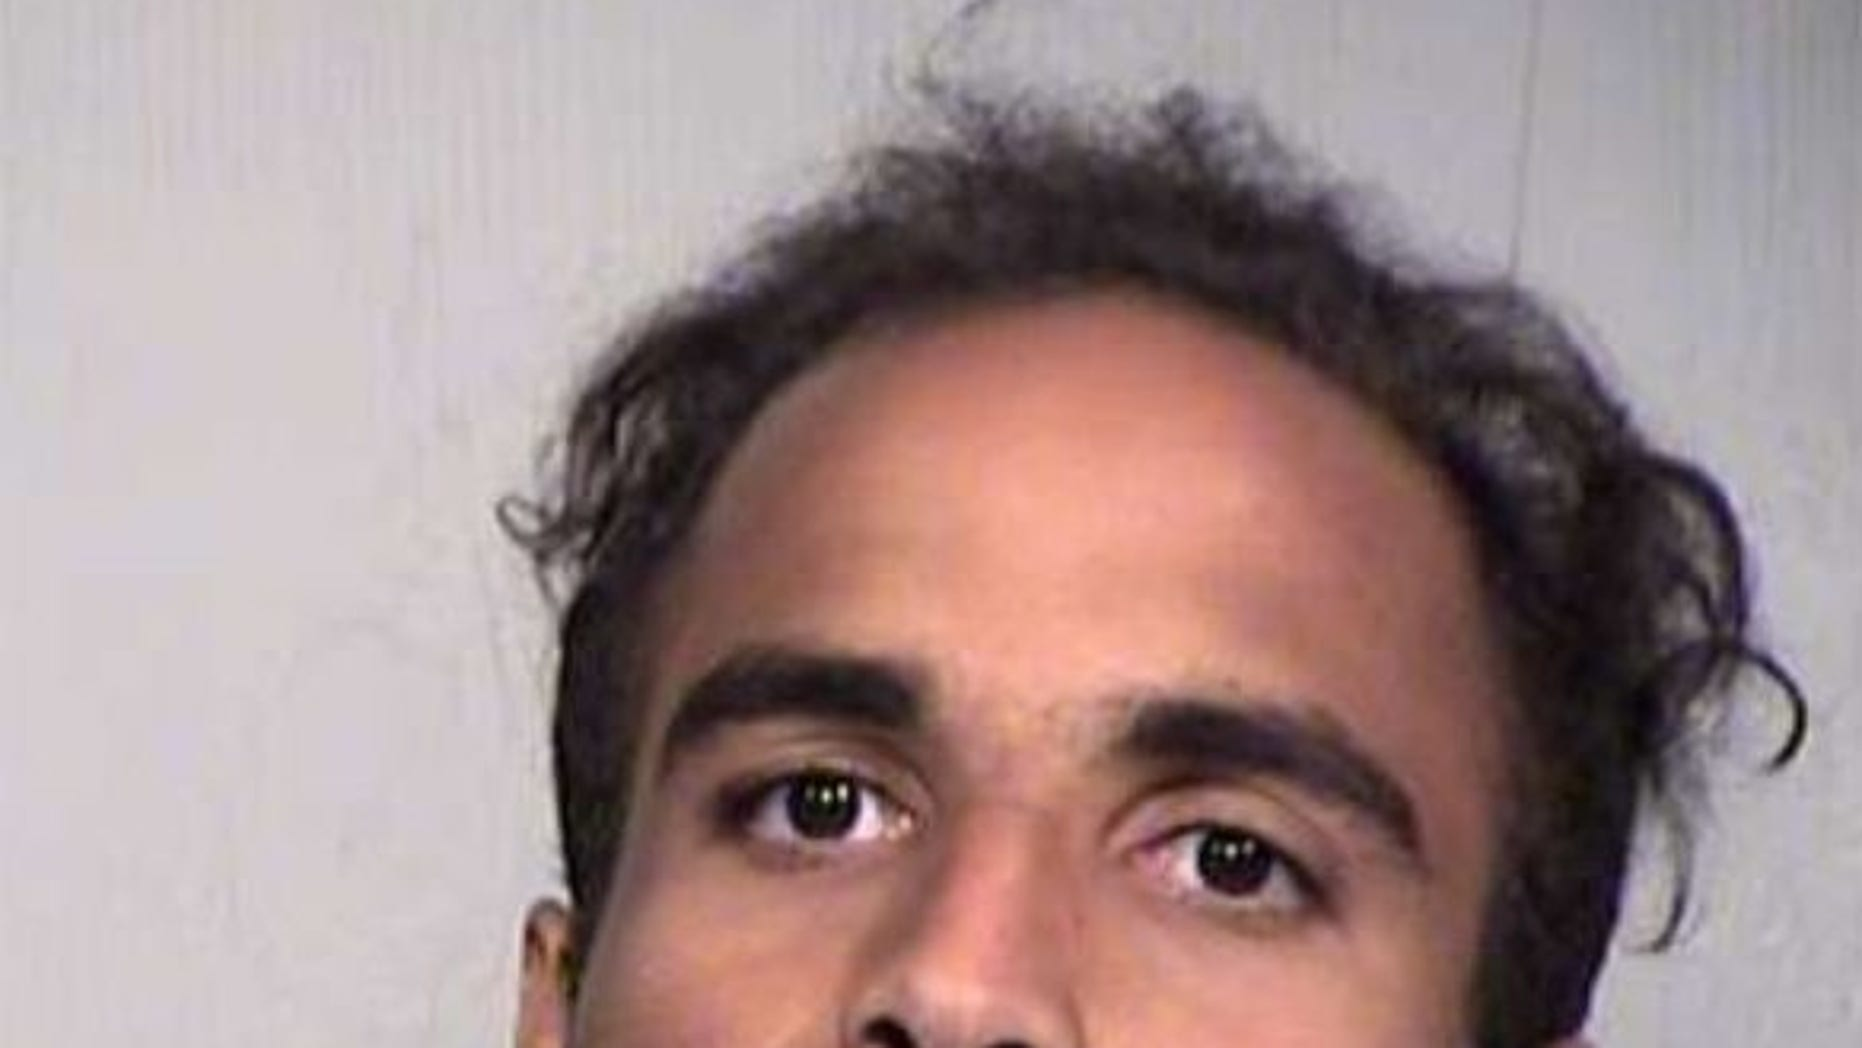 Andre Marc Sutherland, 27, was arrested after he broke into an apartment in Phoenix, Ariz., and was punched in the face by a 13-year-old boy.